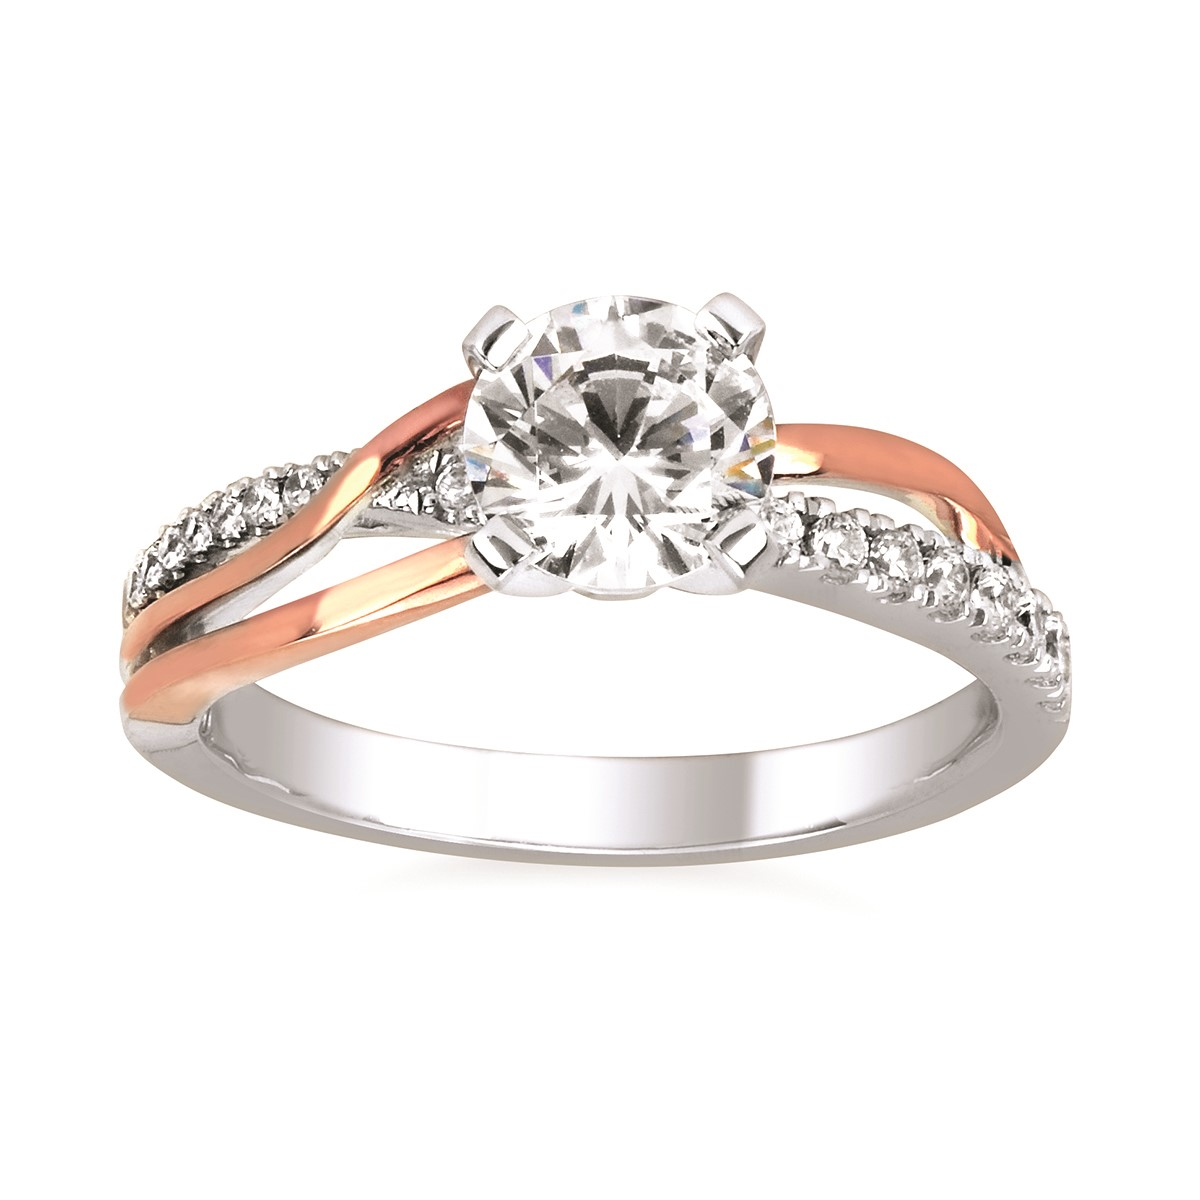 Classic White and Rose Gold Diamond Ring by Ostbye